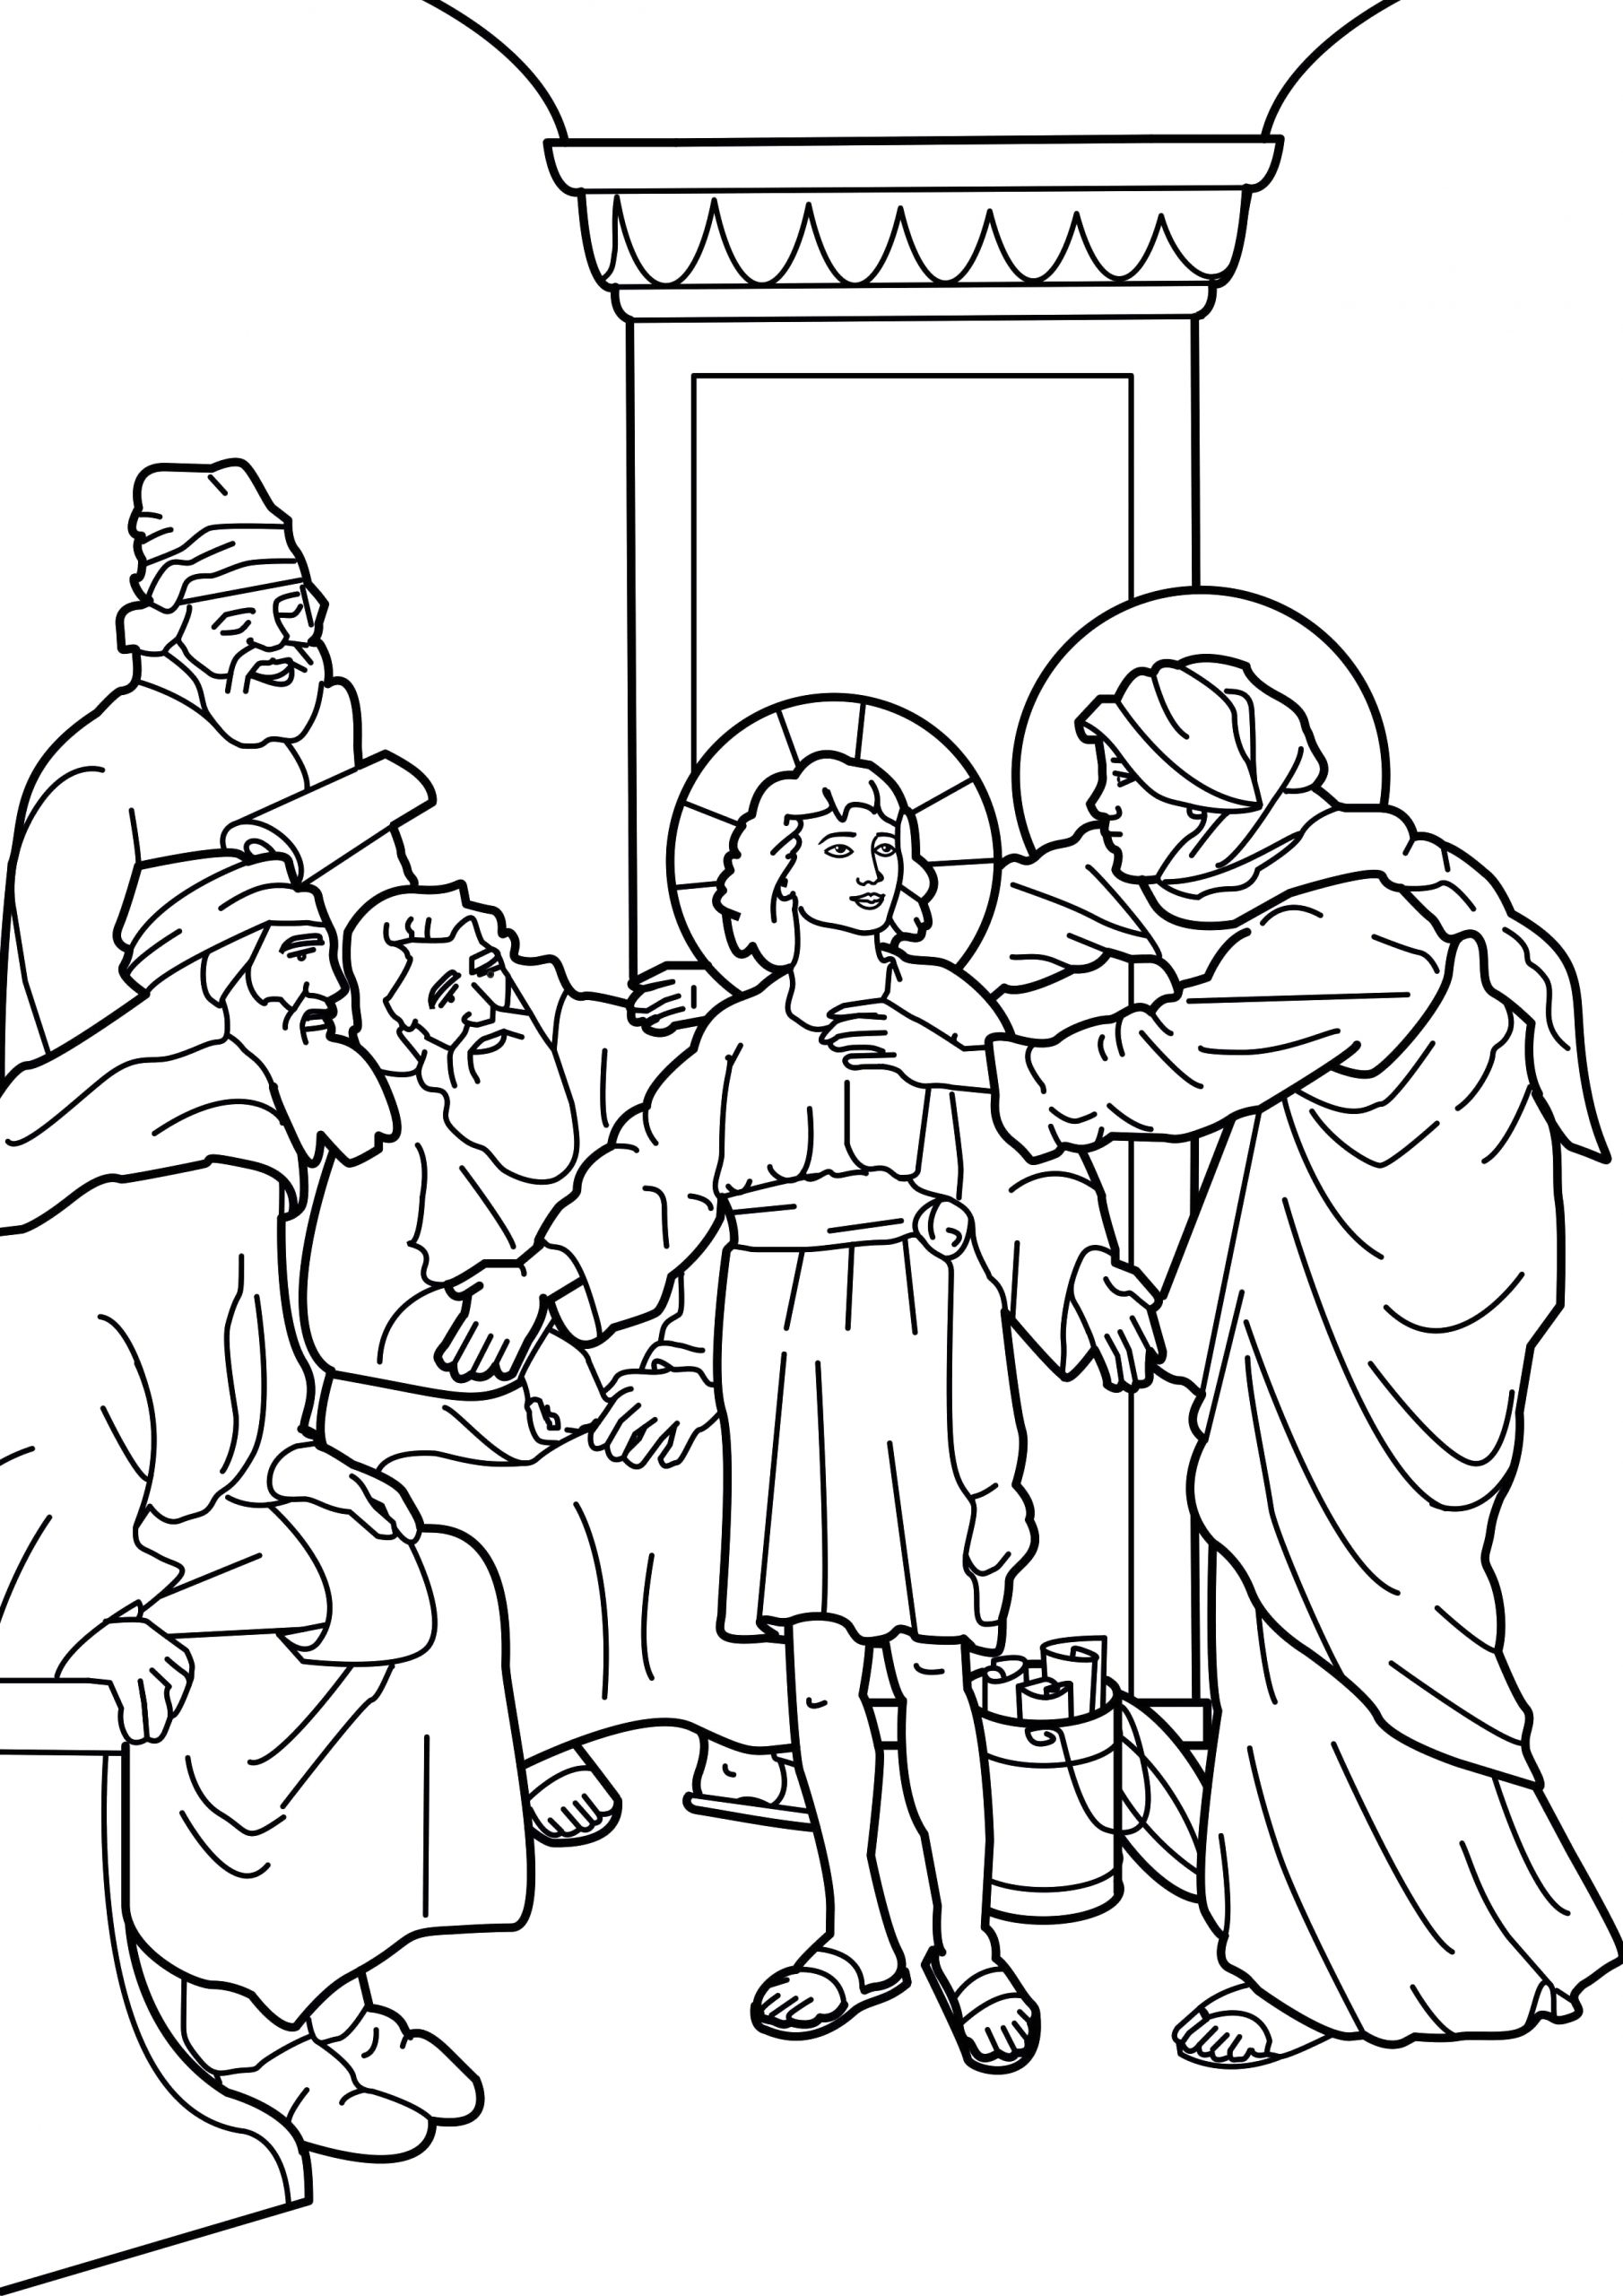 Jesus as A Boy In the Temple Coloring Pages Pin by Catholic Word On Catholic Coloring Pages for Kids